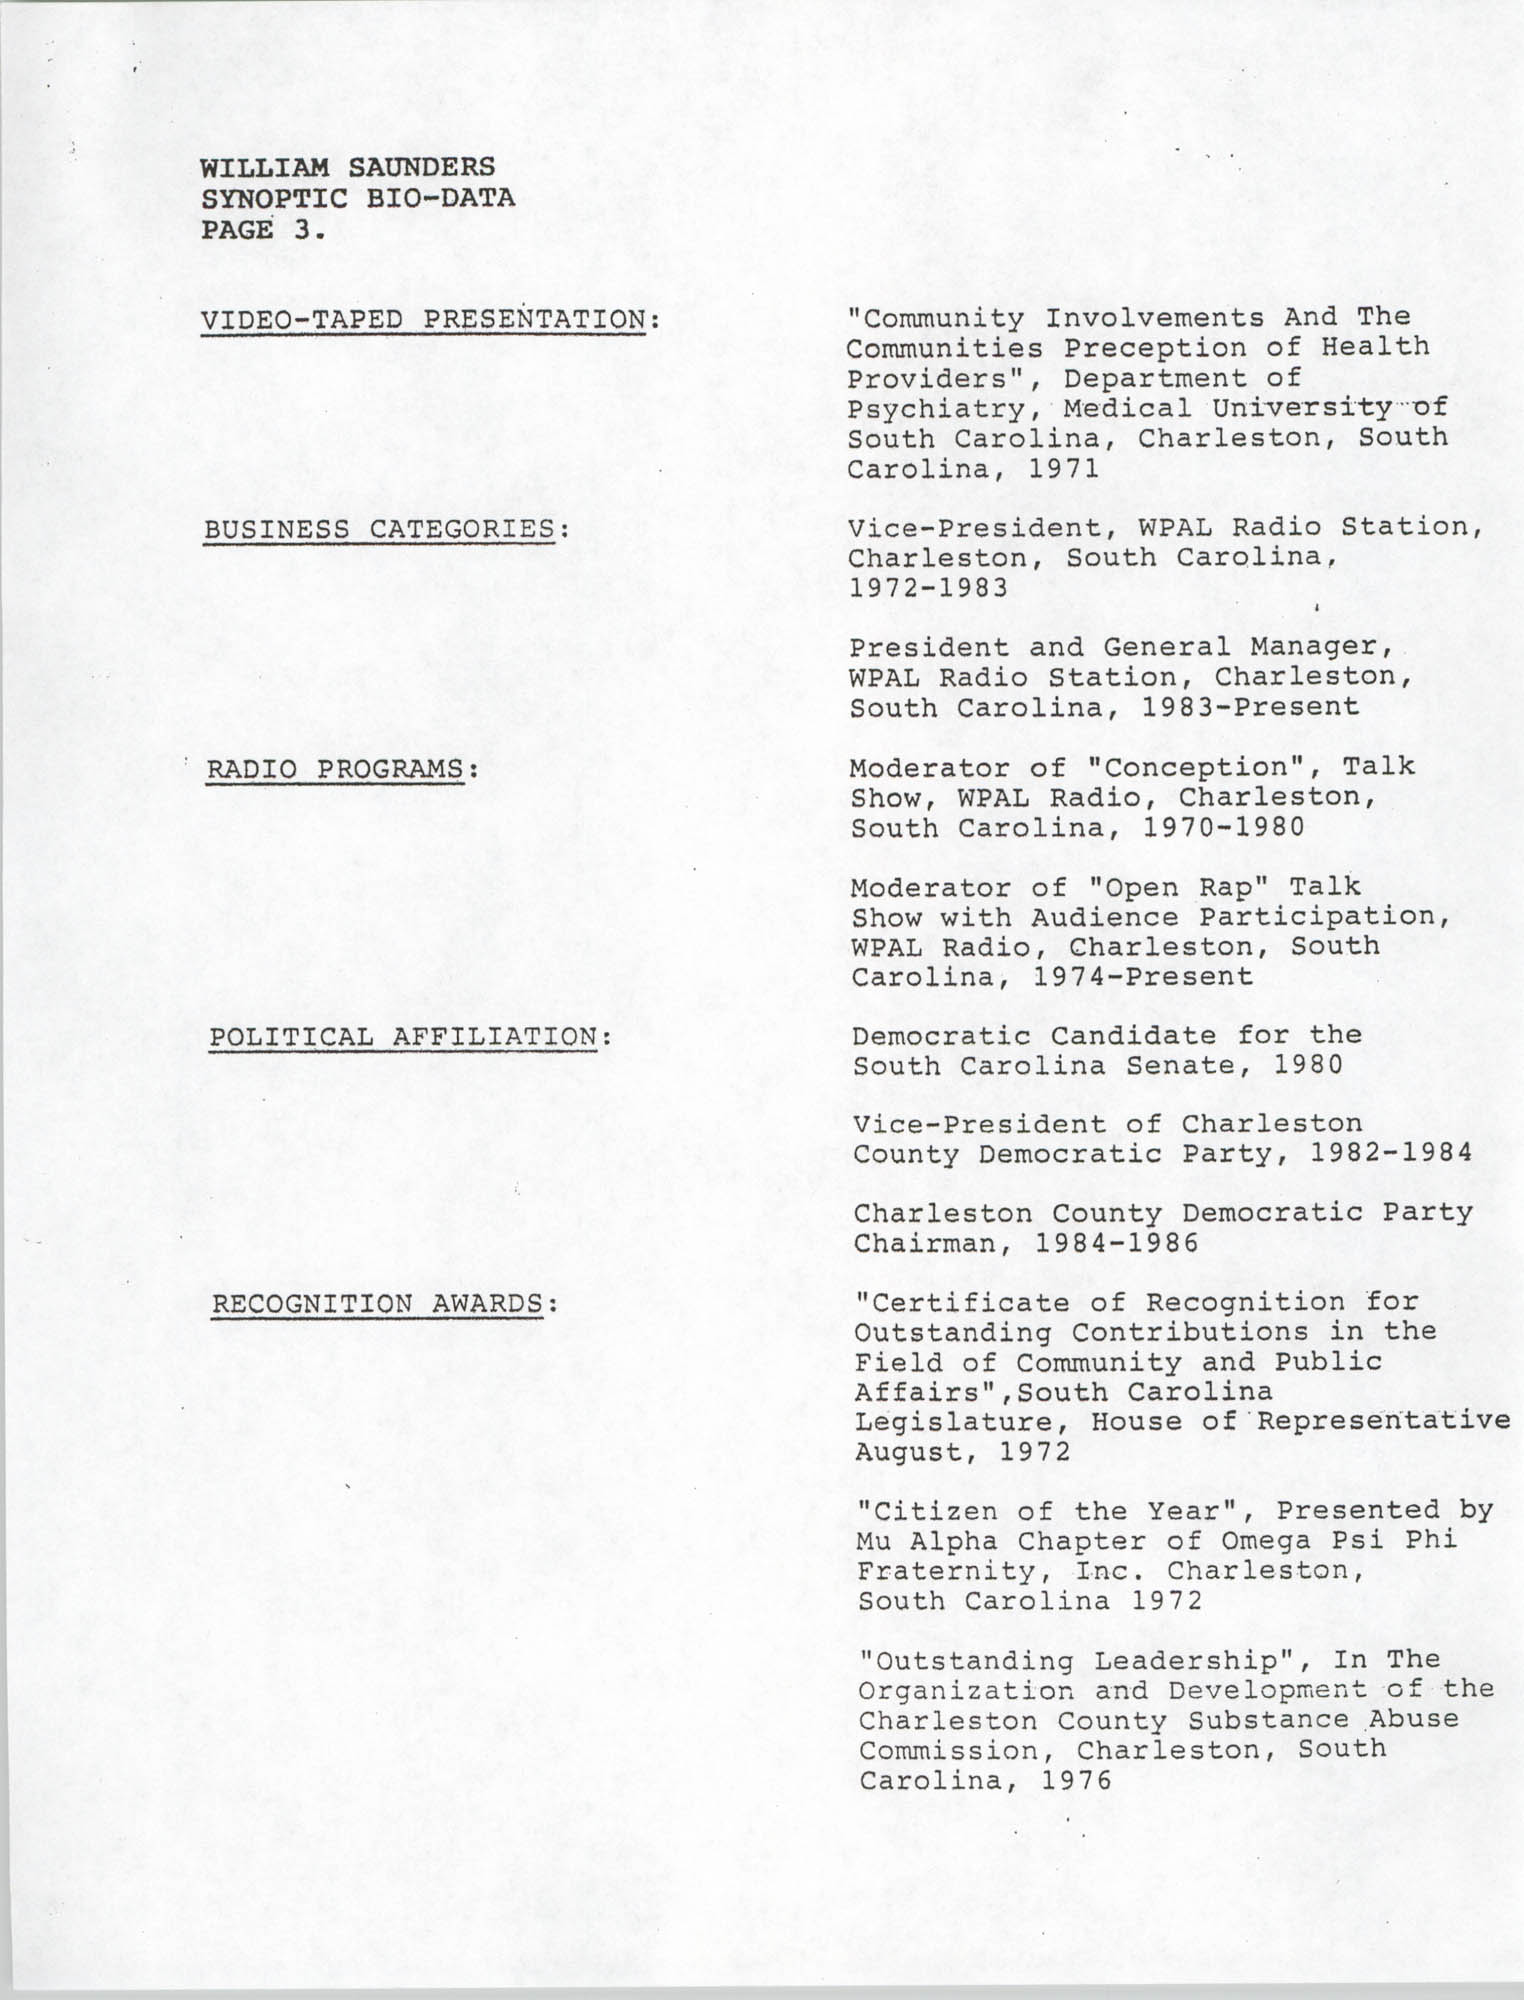 Synopitic Bio-Data on William Saunders, Page 3